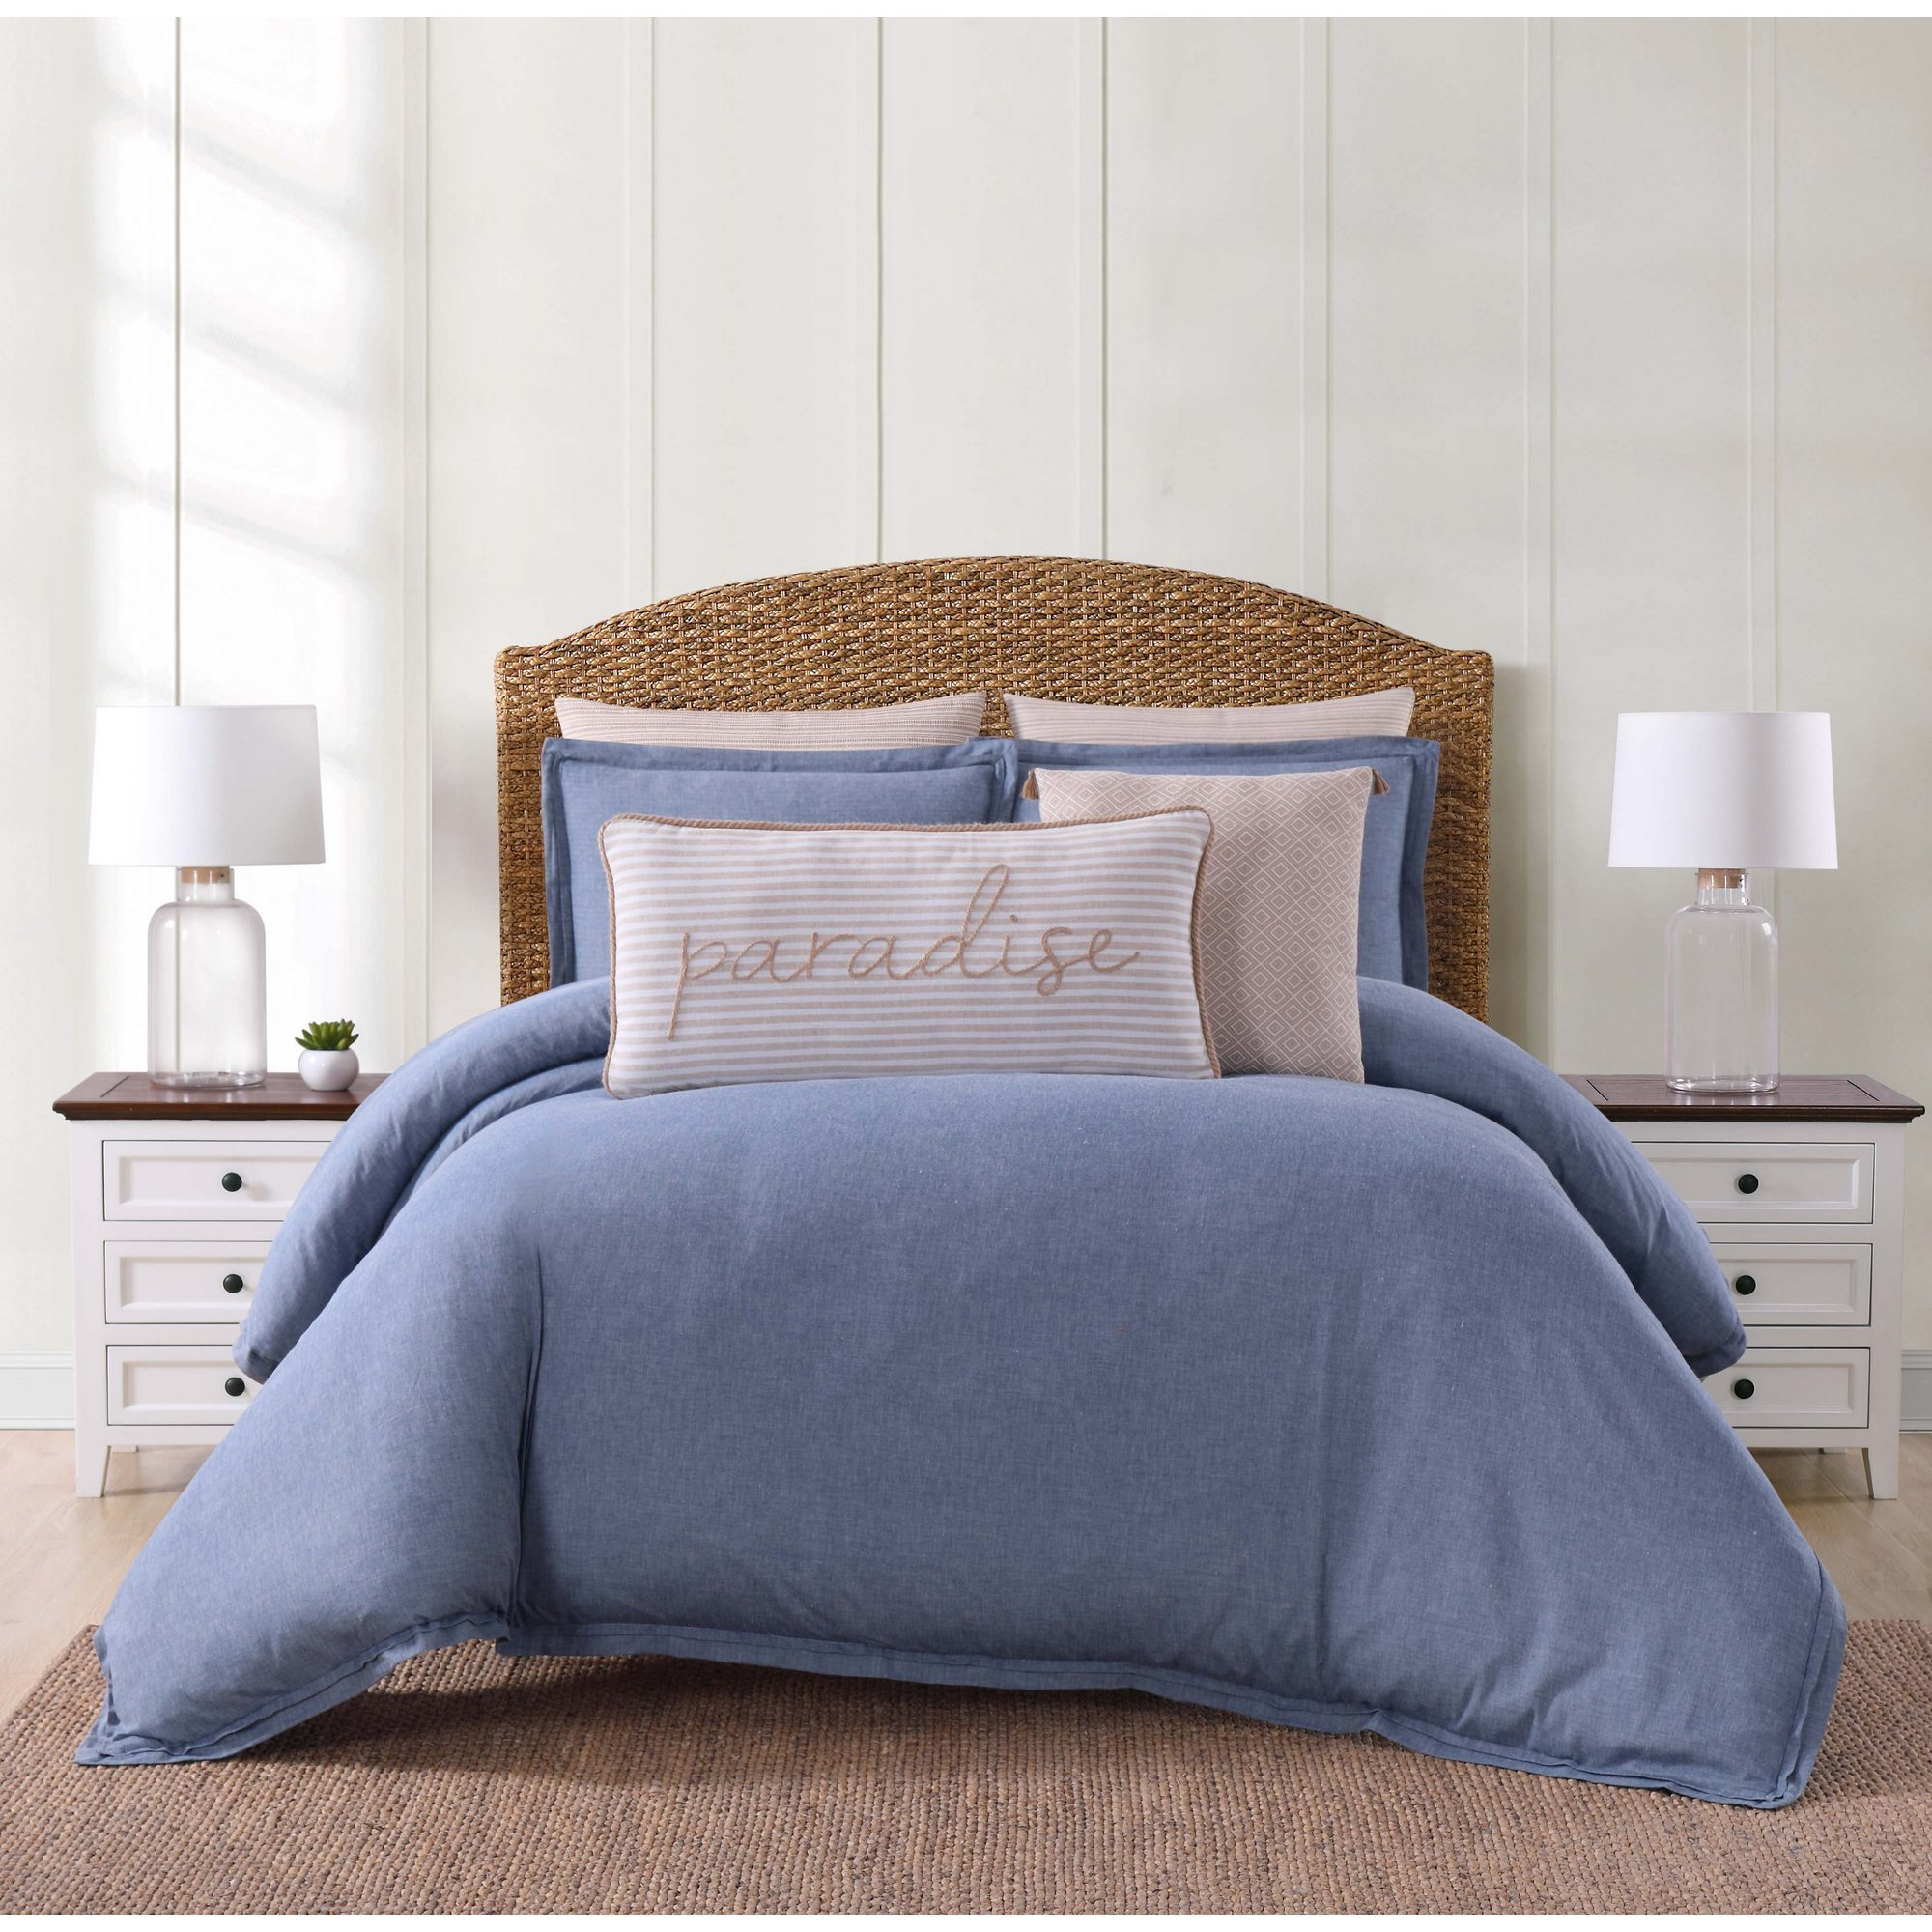 floral product nouvelle bath cover overstock cotton reversible set today bedding chambray shipping duvet free home